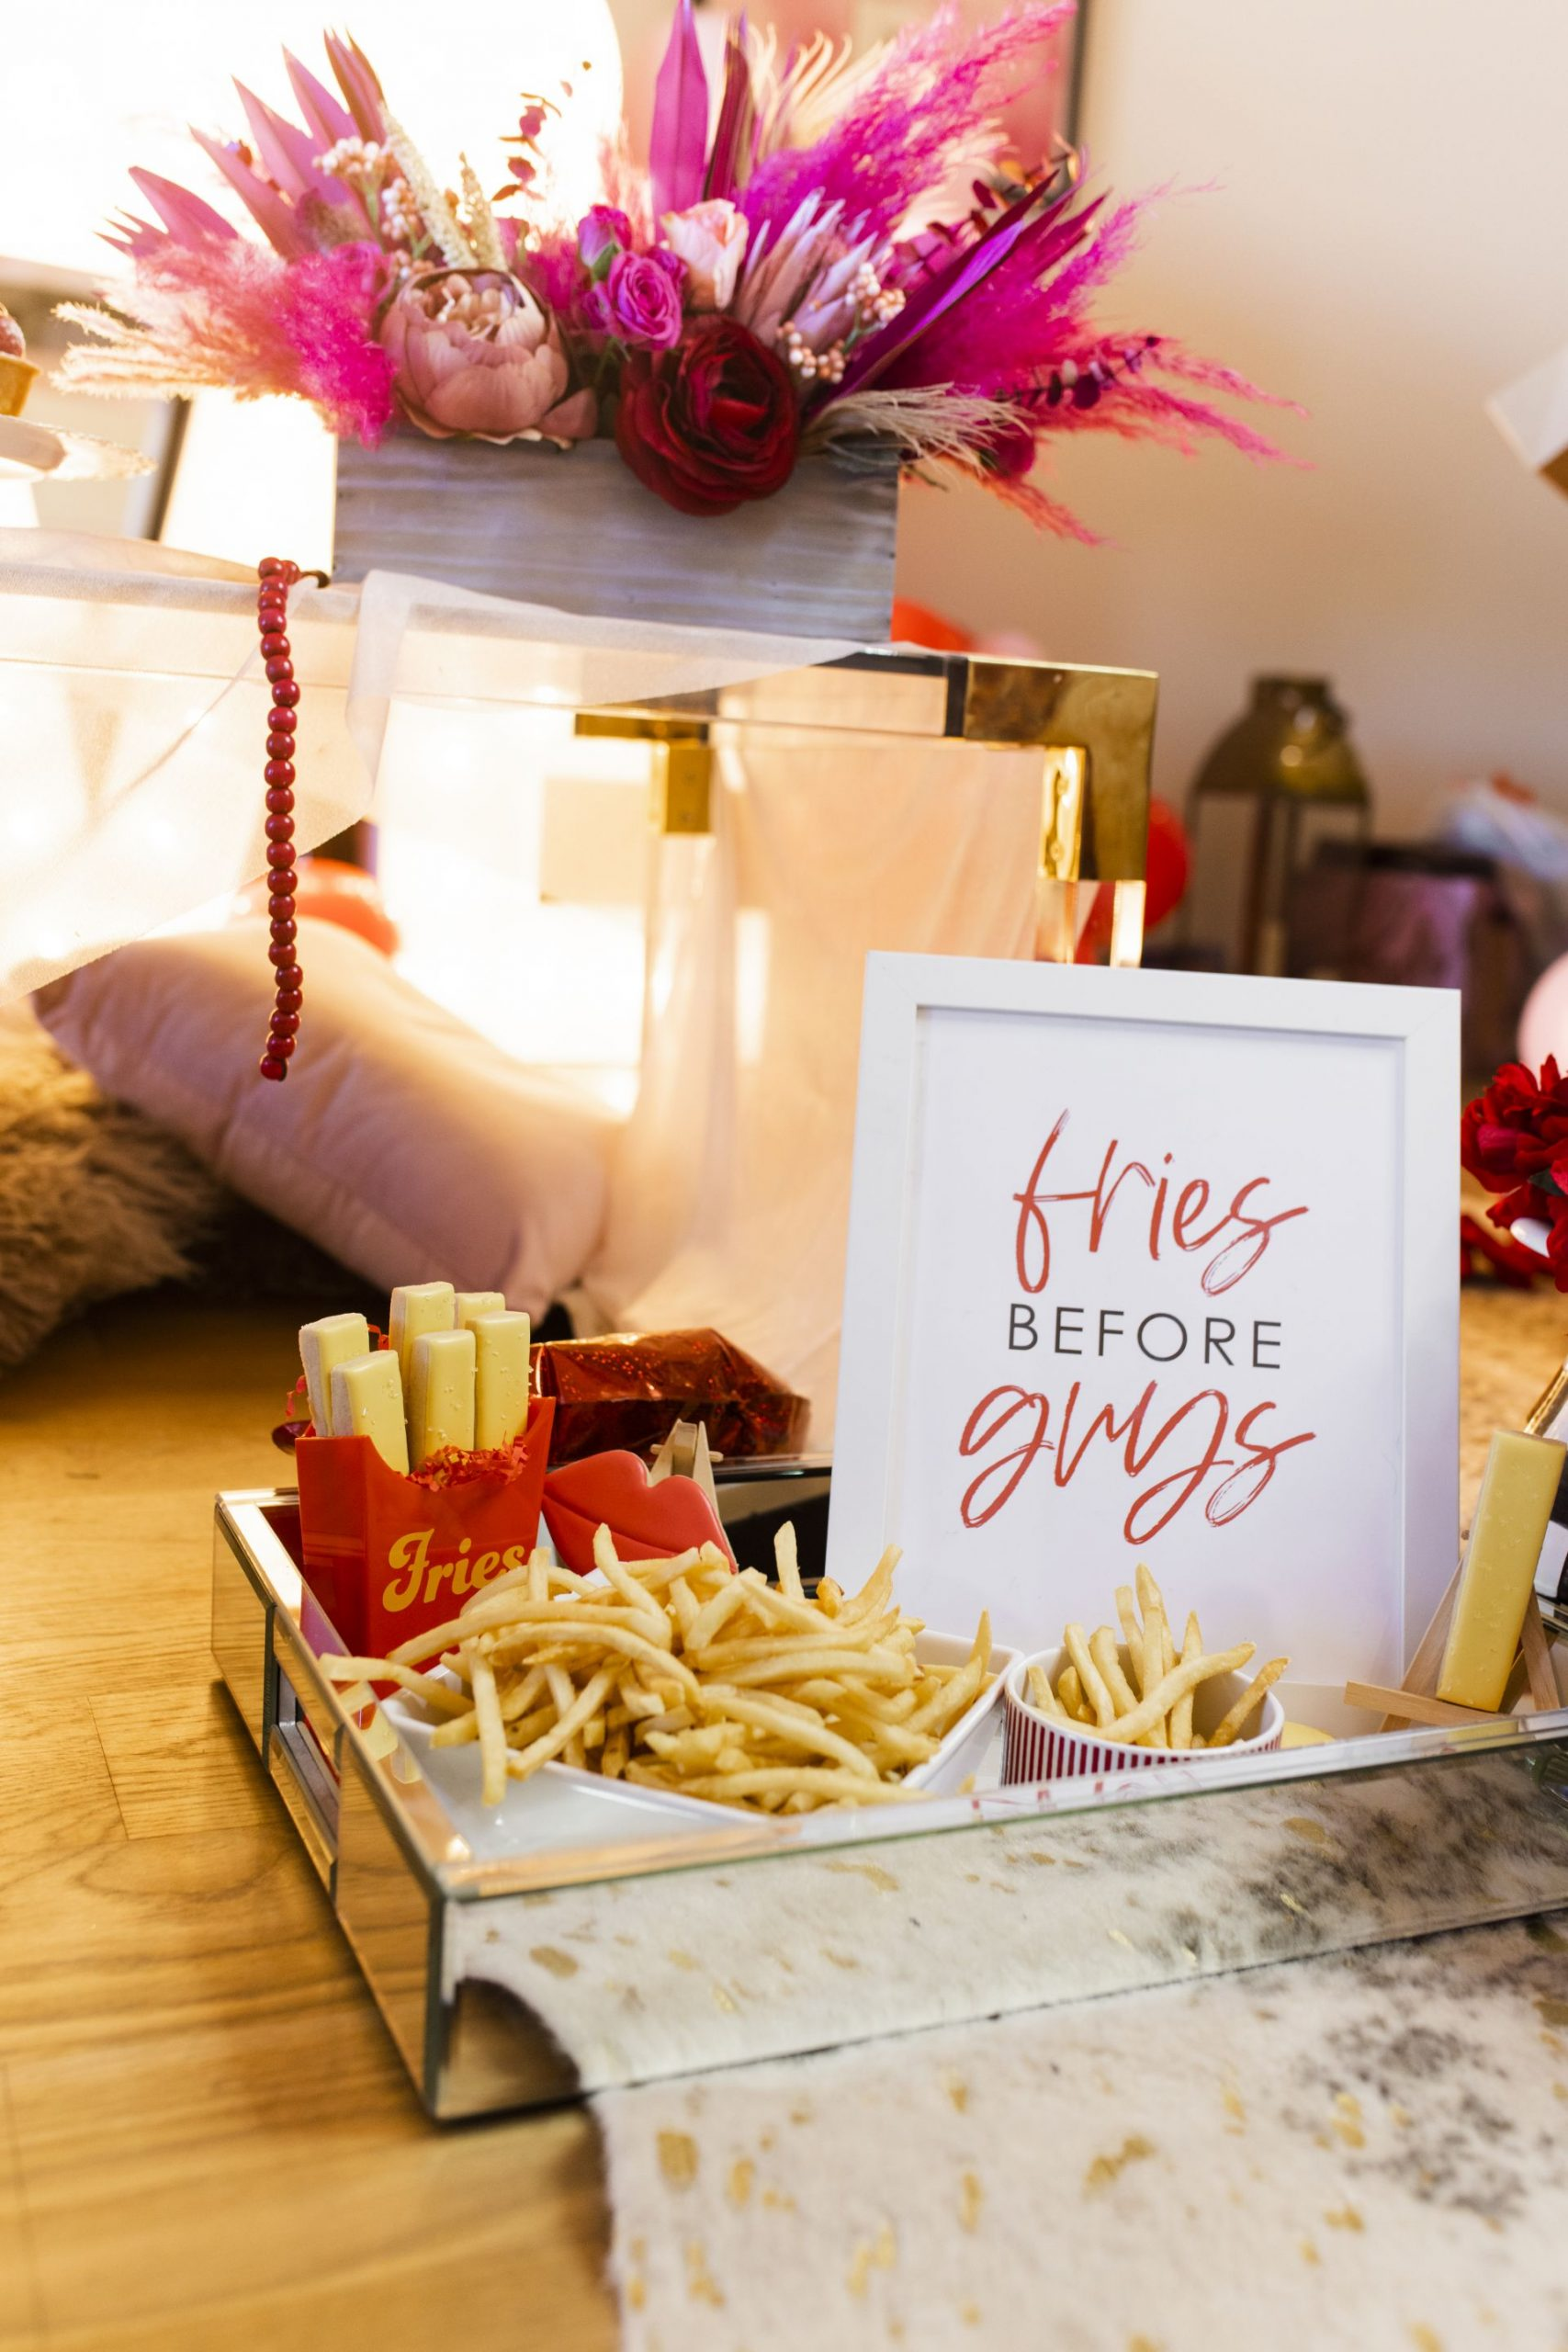 girls night party ideas, fries before guys party set up, girls night in ideas, girls night in party, valentine's day table setting, galentine's table setting, girls night table setting, hearts table settings, girly party theme decor, love party theme decor, valentines day party ideas, valentines day party ideas for adults, Red Soles and Red Wine